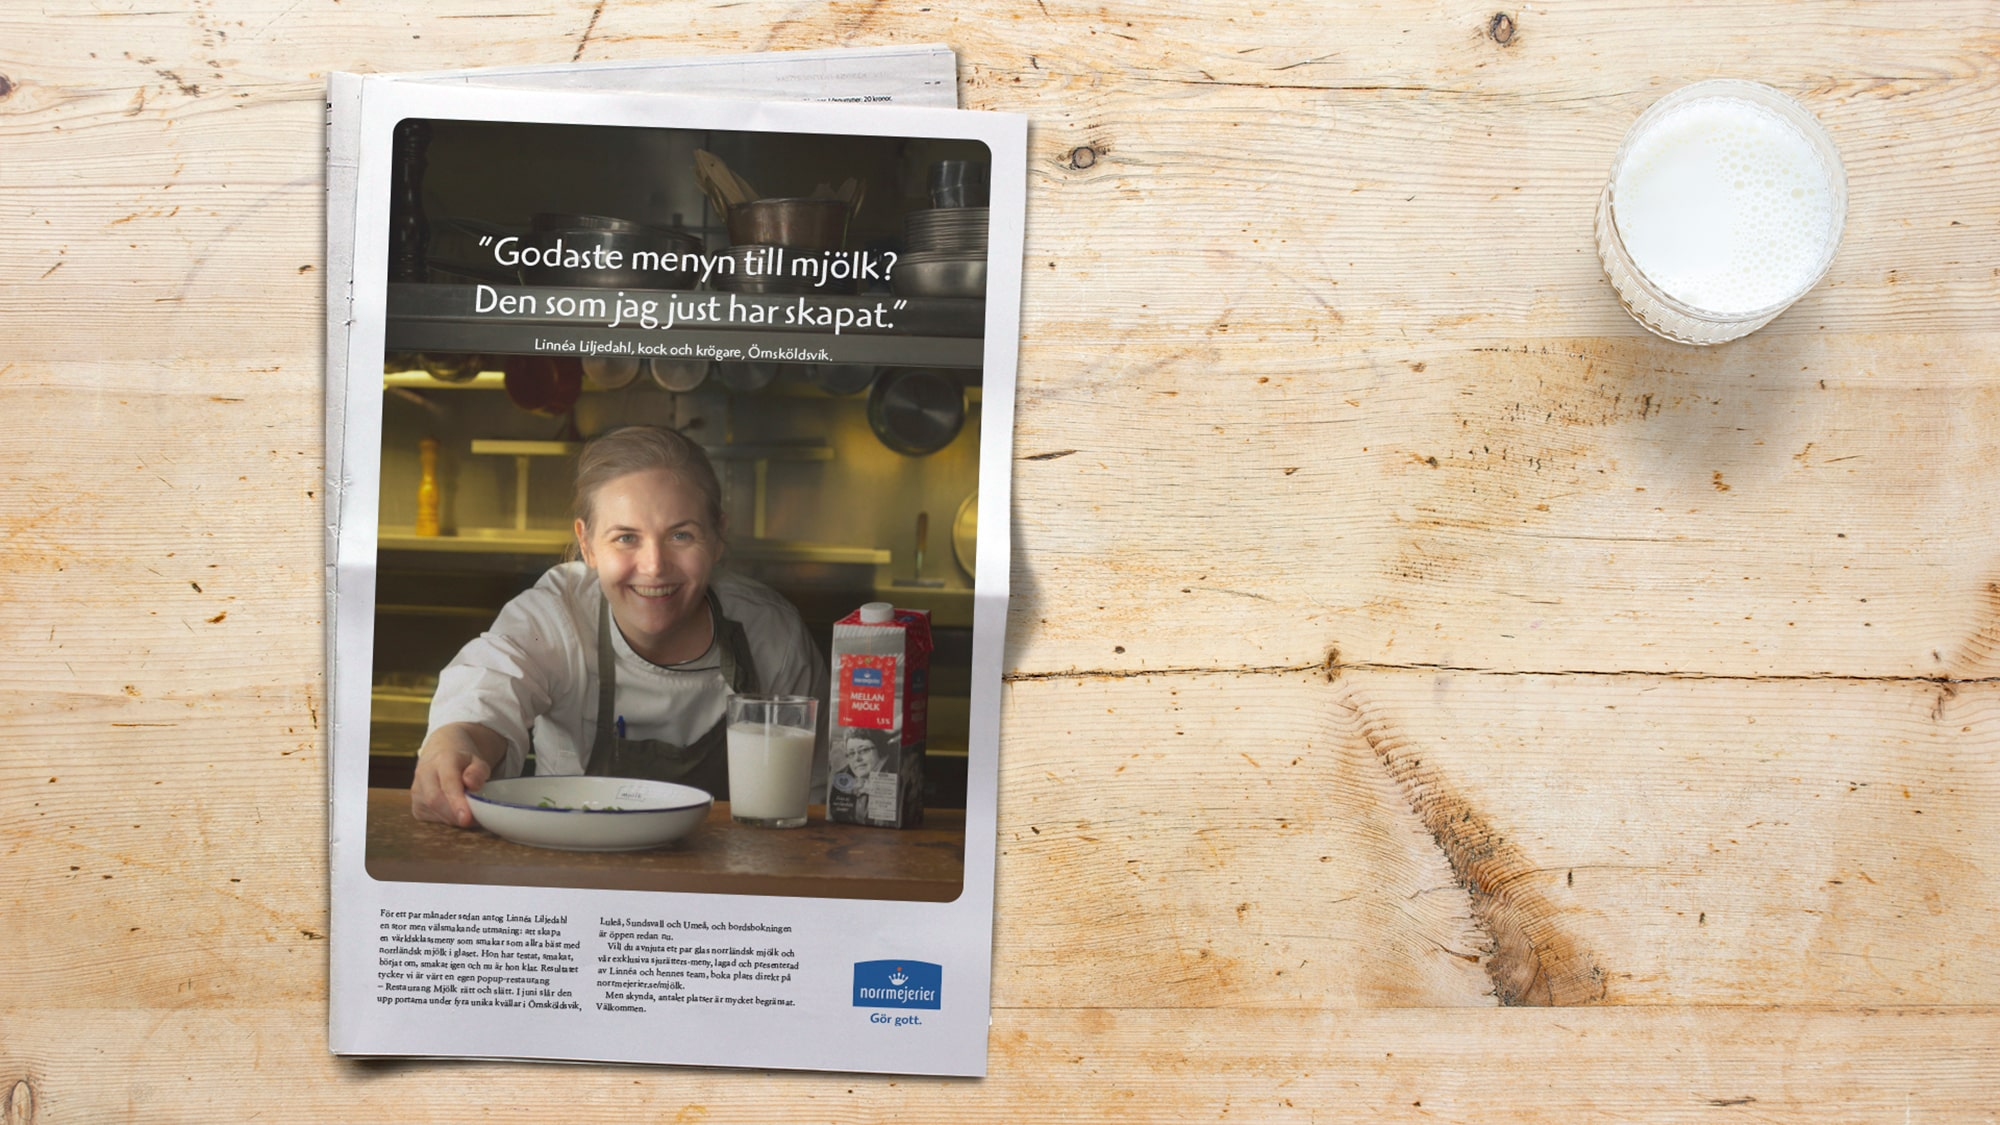 Newspaper with an ad for Milk put on wooden table with glass of milk